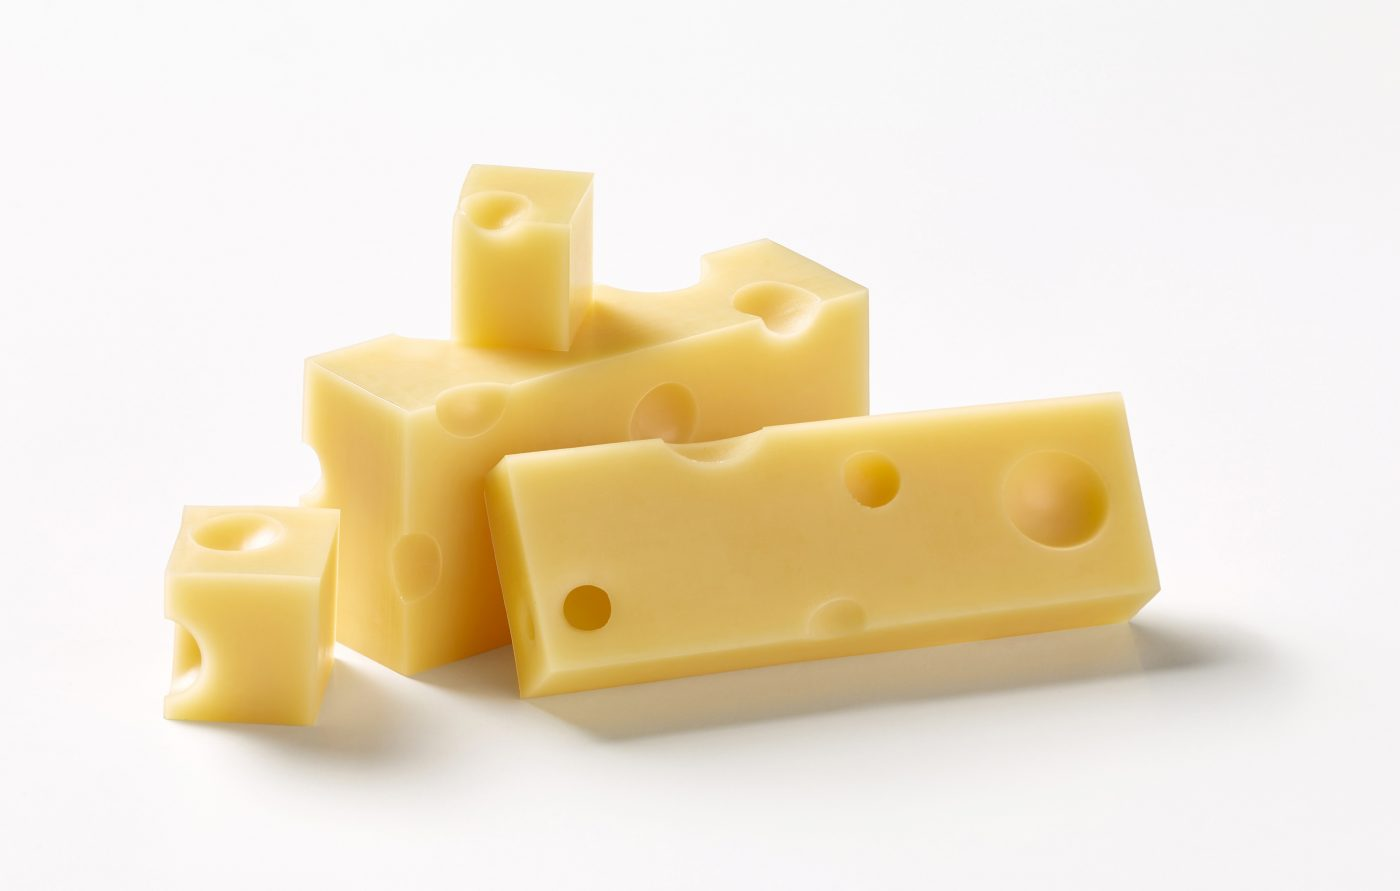 cut pieces of emmental cheese lie on top of each other as a group